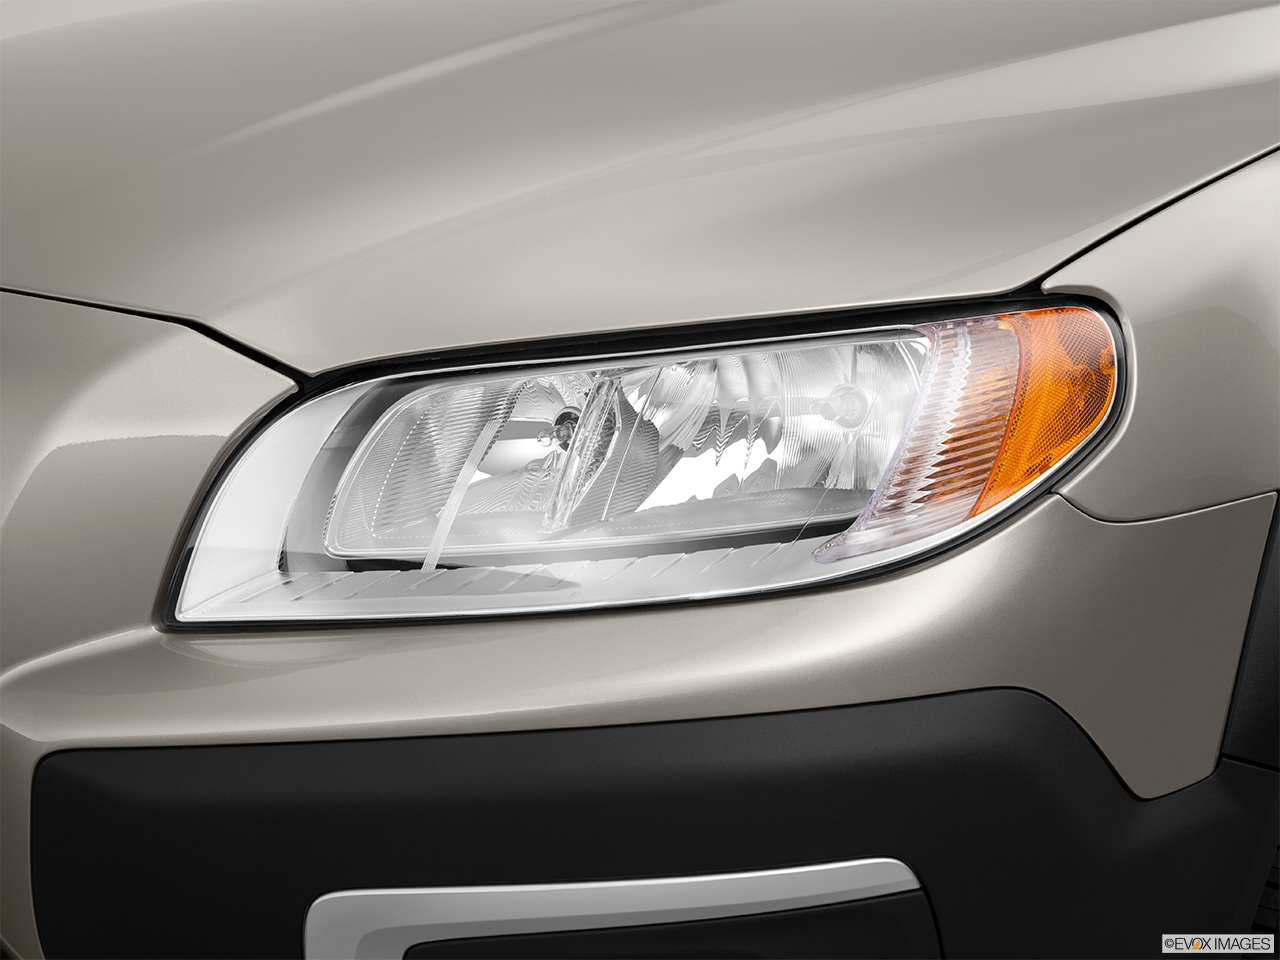 2014 Volvo XC70 3.2 AWD Premier Plus Drivers Side Headlight.